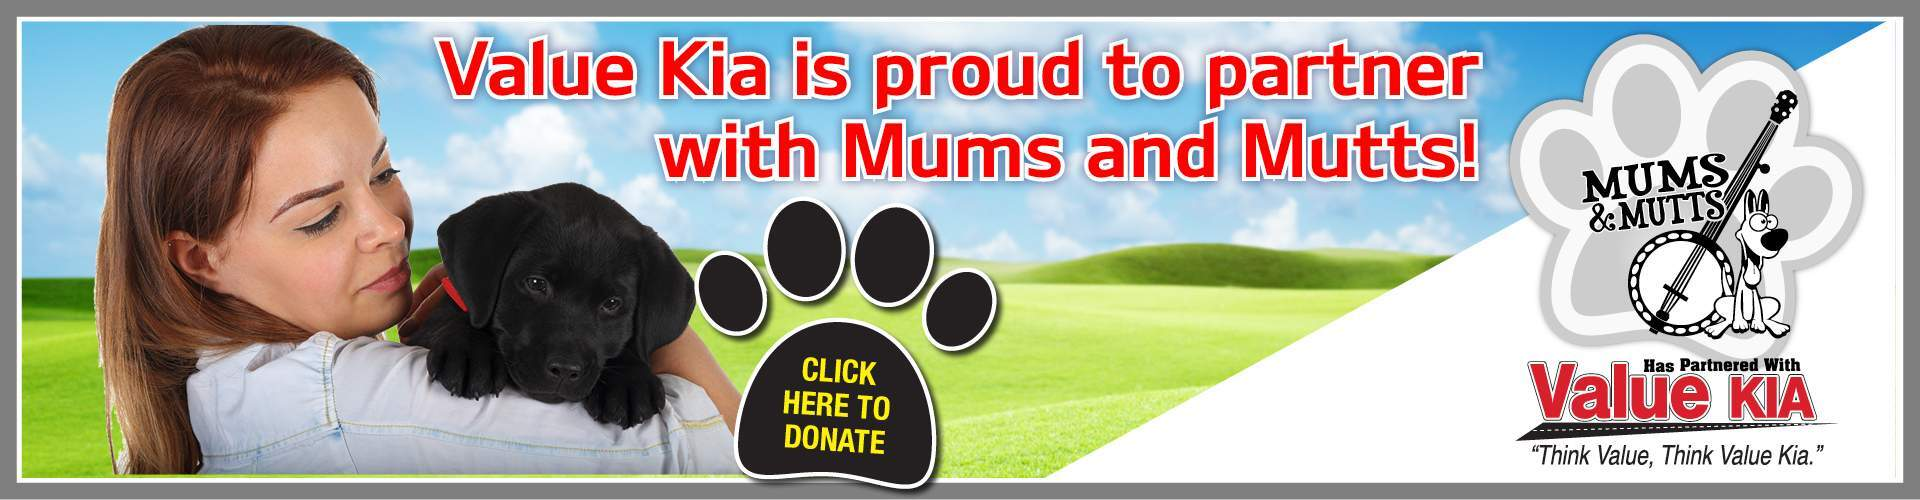 Mums and Mutts